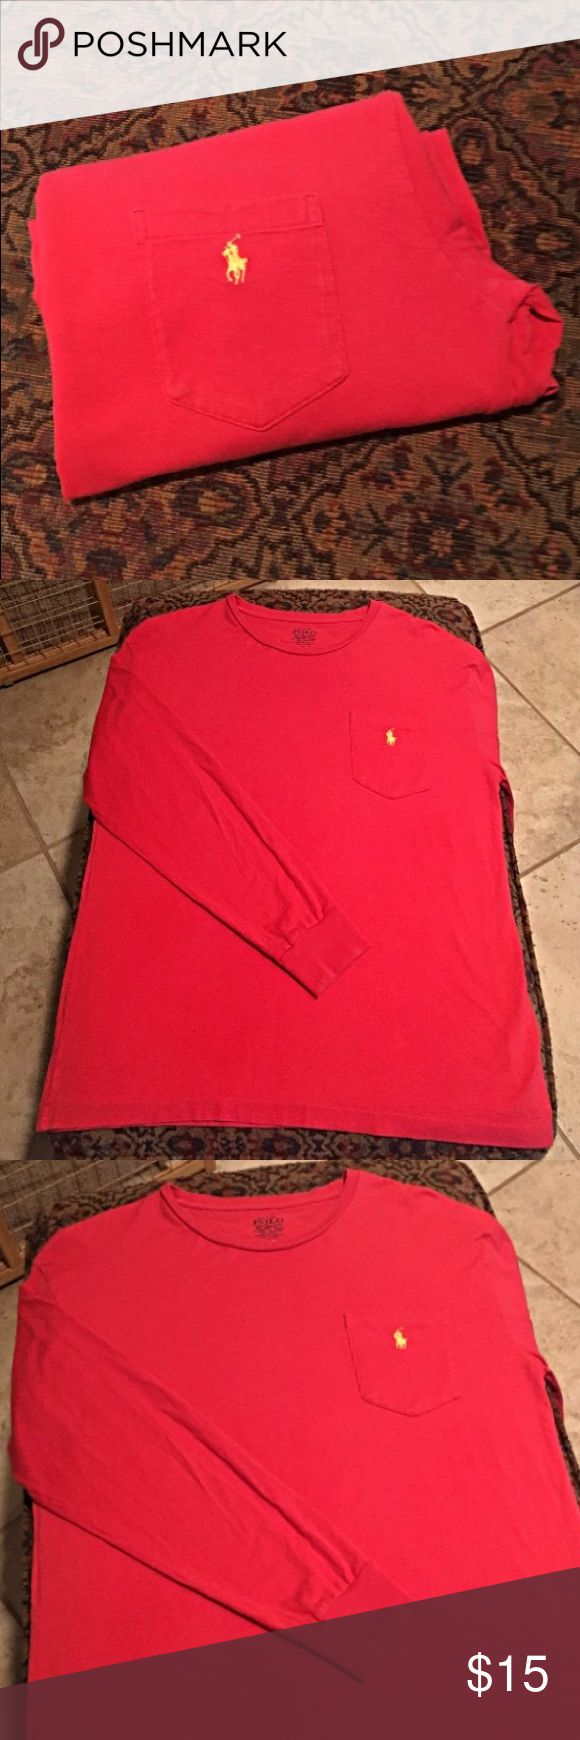 Polo Ralph Lauren Pocket Tee Orangish red Polo long sleeve tee with pocket on the breast. Yellow Polo horse embroidered on pocket. 100% cotton. Worn once, if at all. Polo by Ralph Lauren Shirts Tees - Long Sleeve